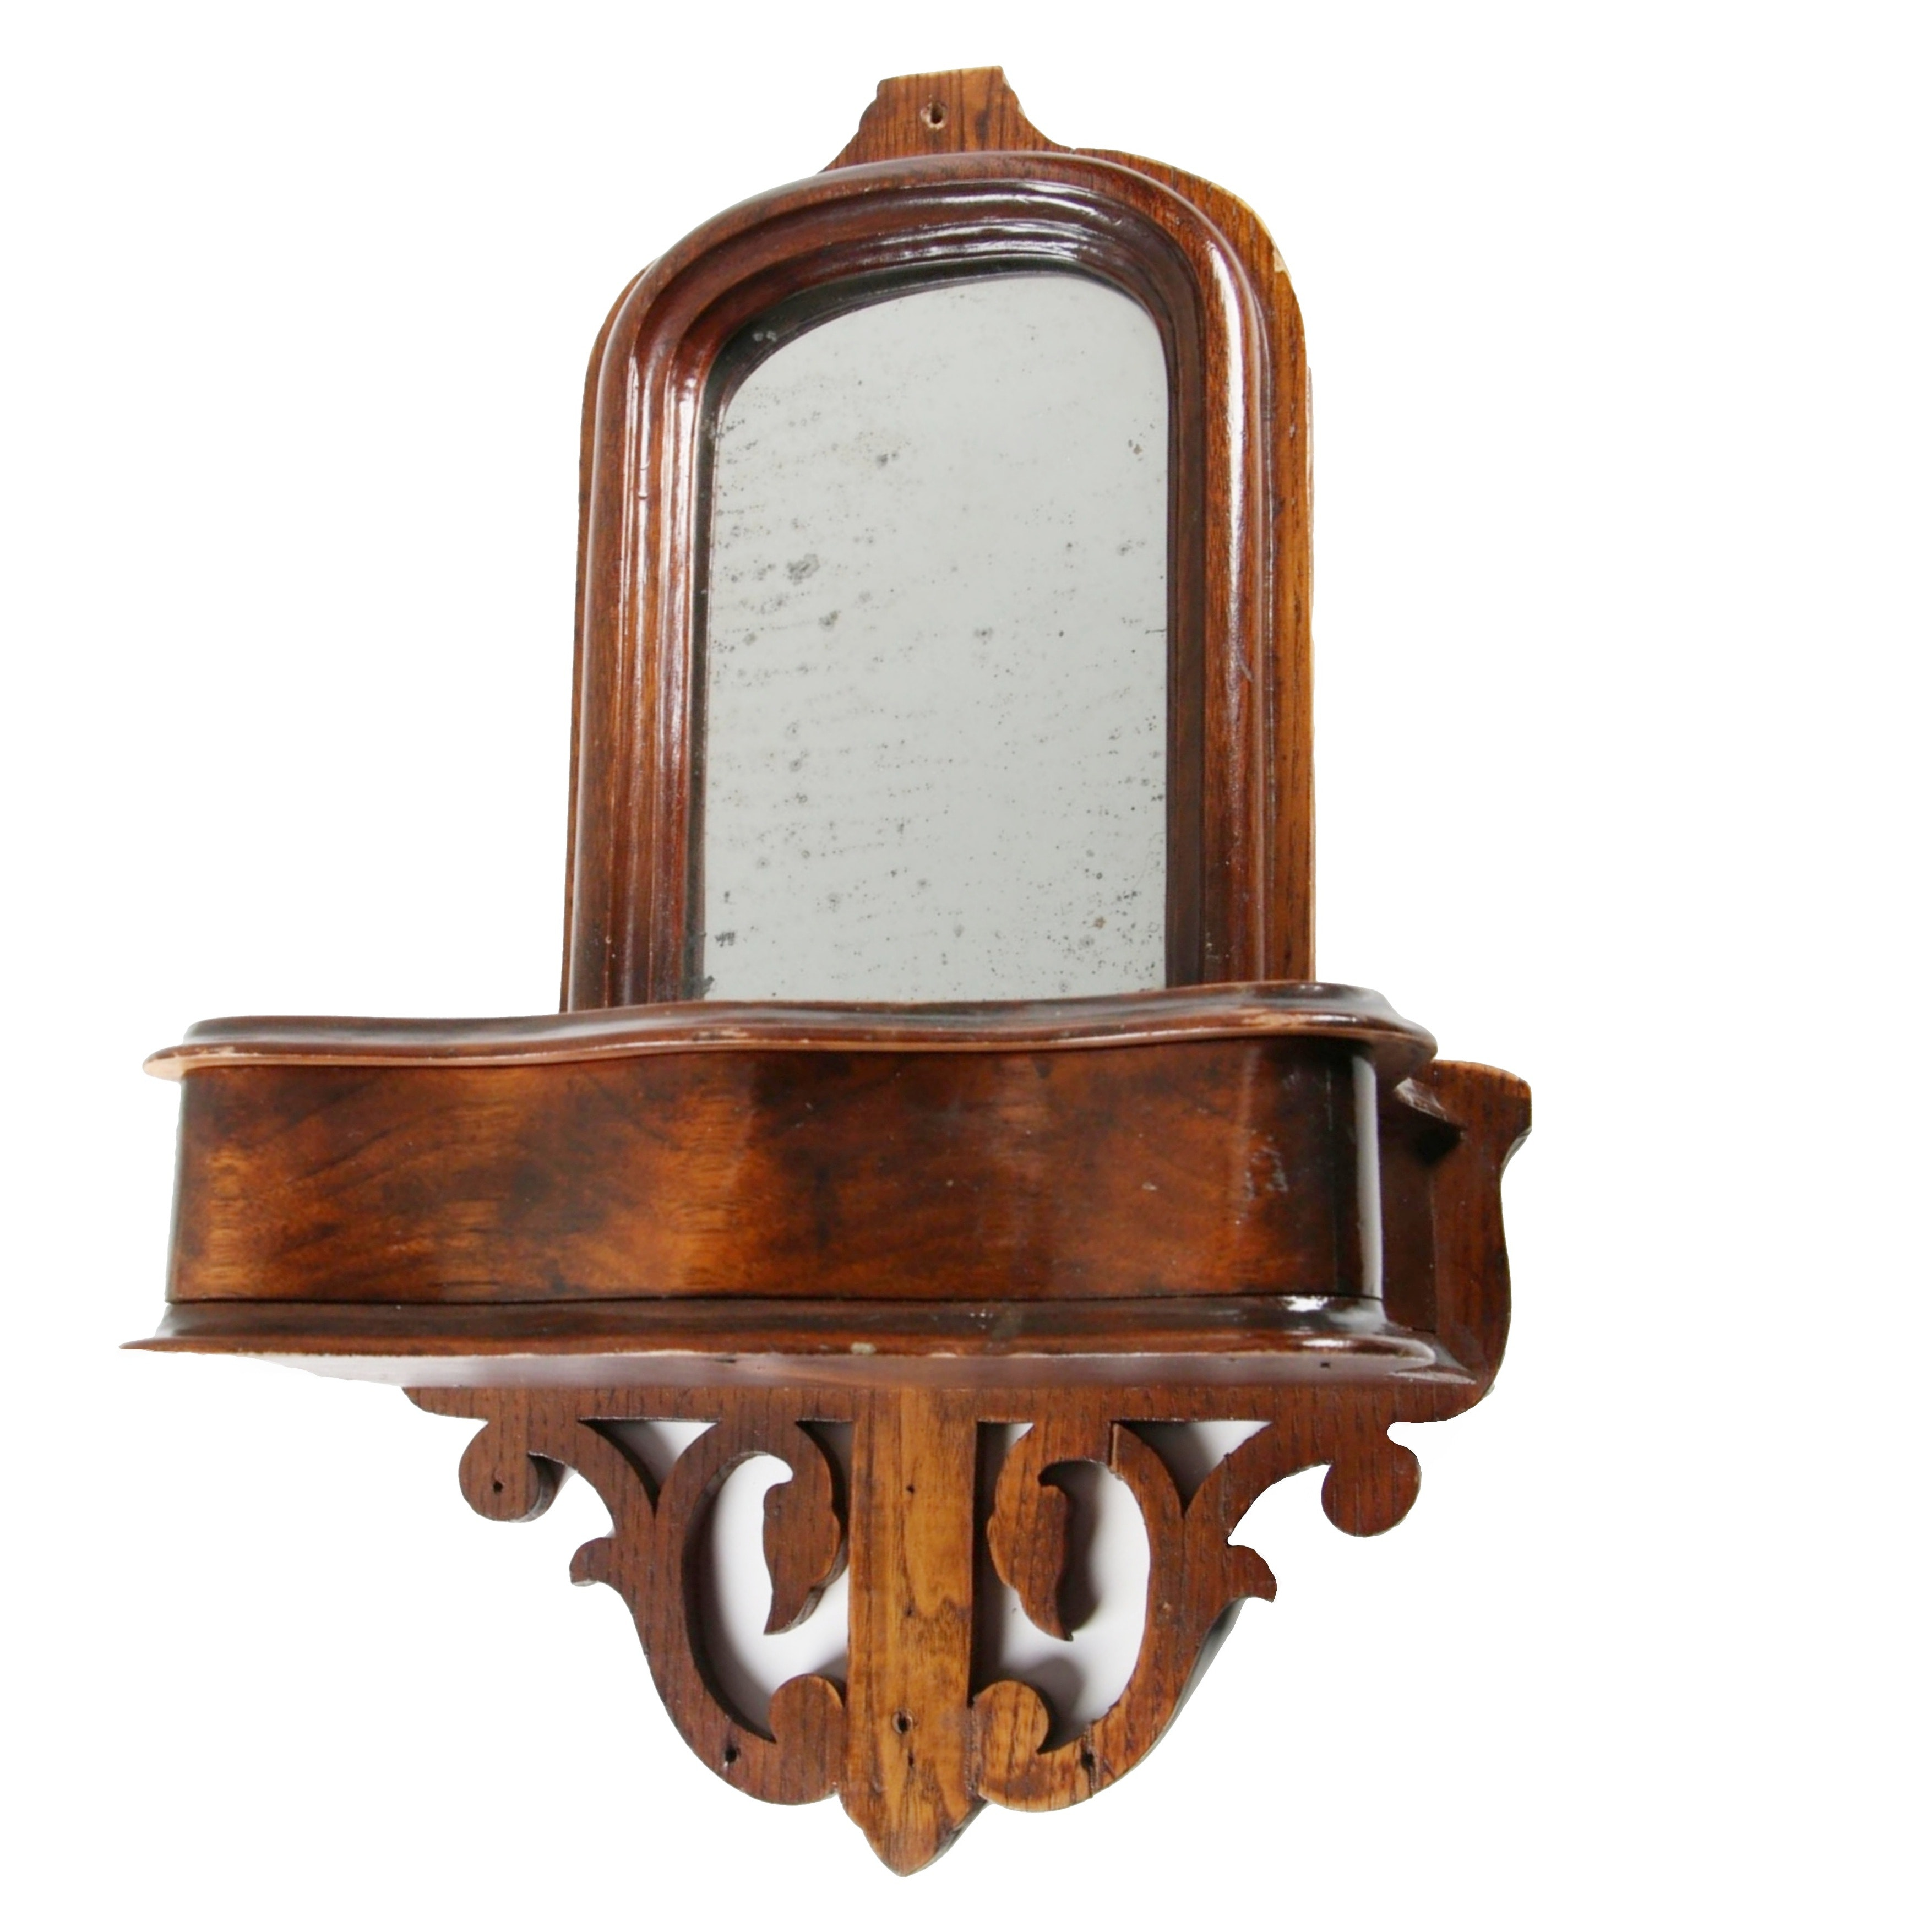 Victorian Oak Framed Hall Mirror with Storage Shelf, 19th Century